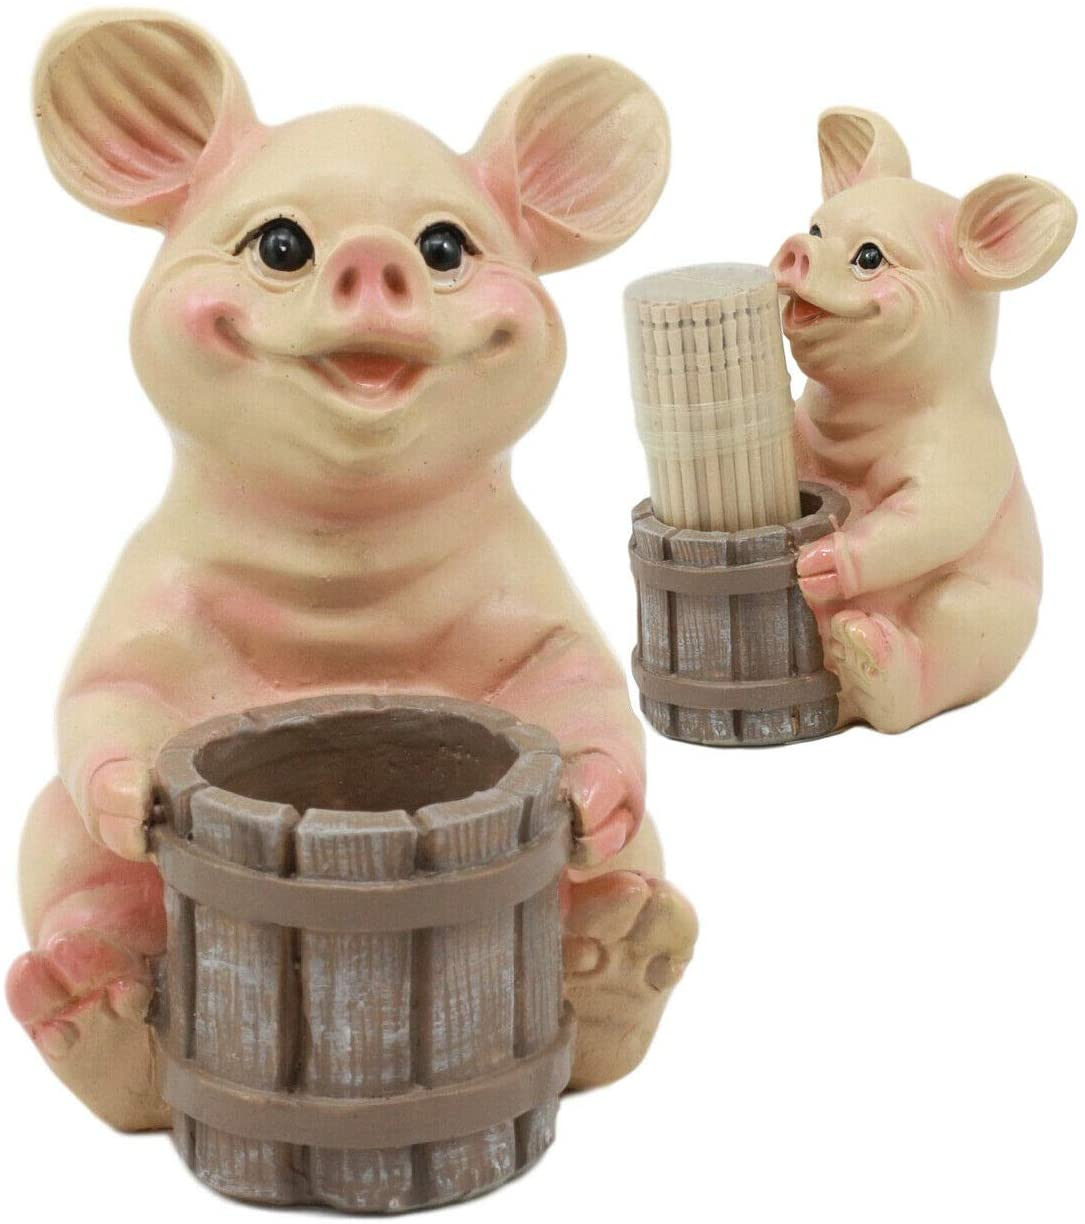 HomDEc Country Farm Barn Piglet Pig by A Barrel Toothpick Holder with Toothpicks